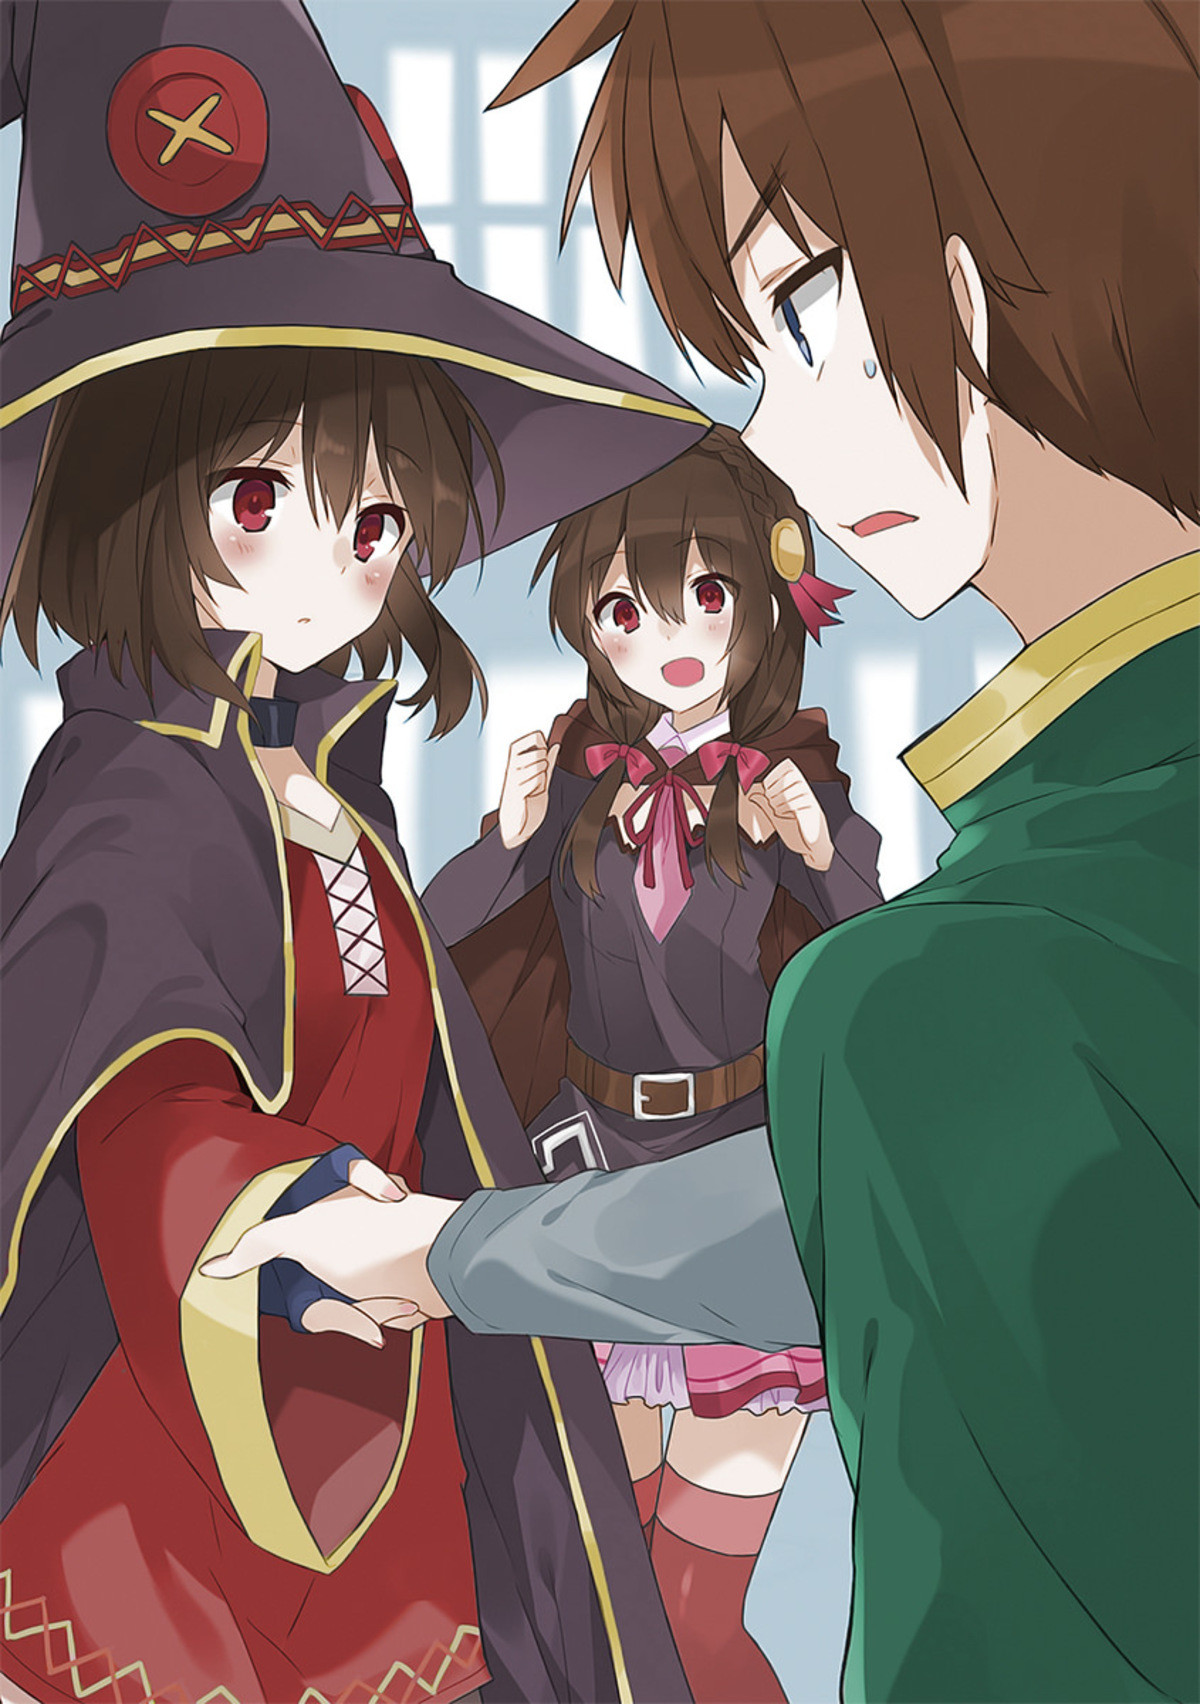 Megumin . join list: Lewds4DHeart (1599 subs)Mention History join list:. have something less lewd to adjust yourself